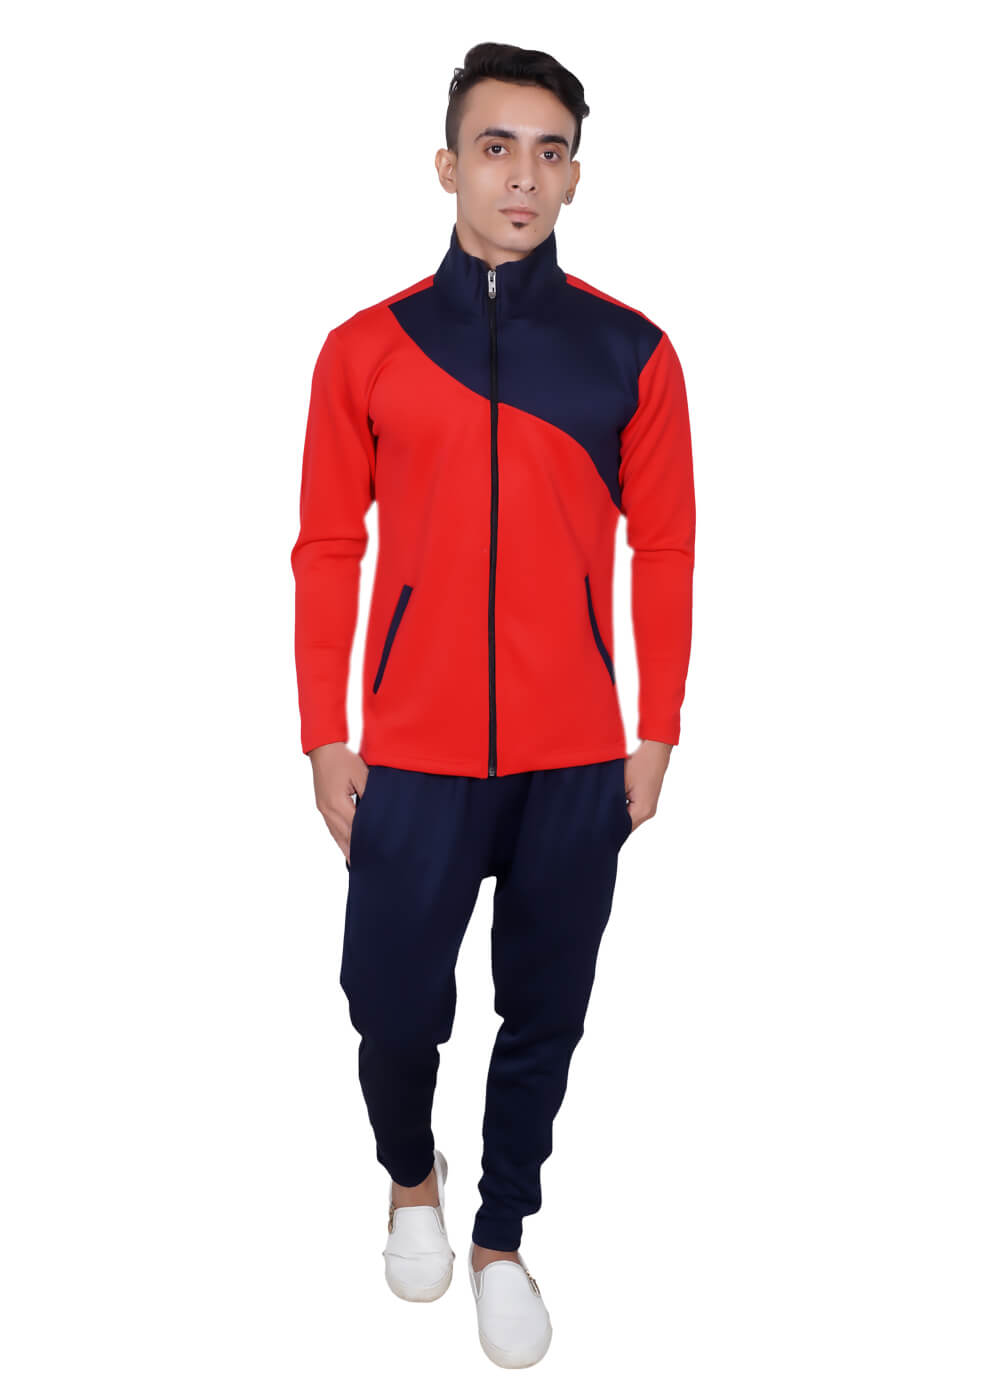 Cheap Tracksuits Manufacturers in Jalandhar in South Africa